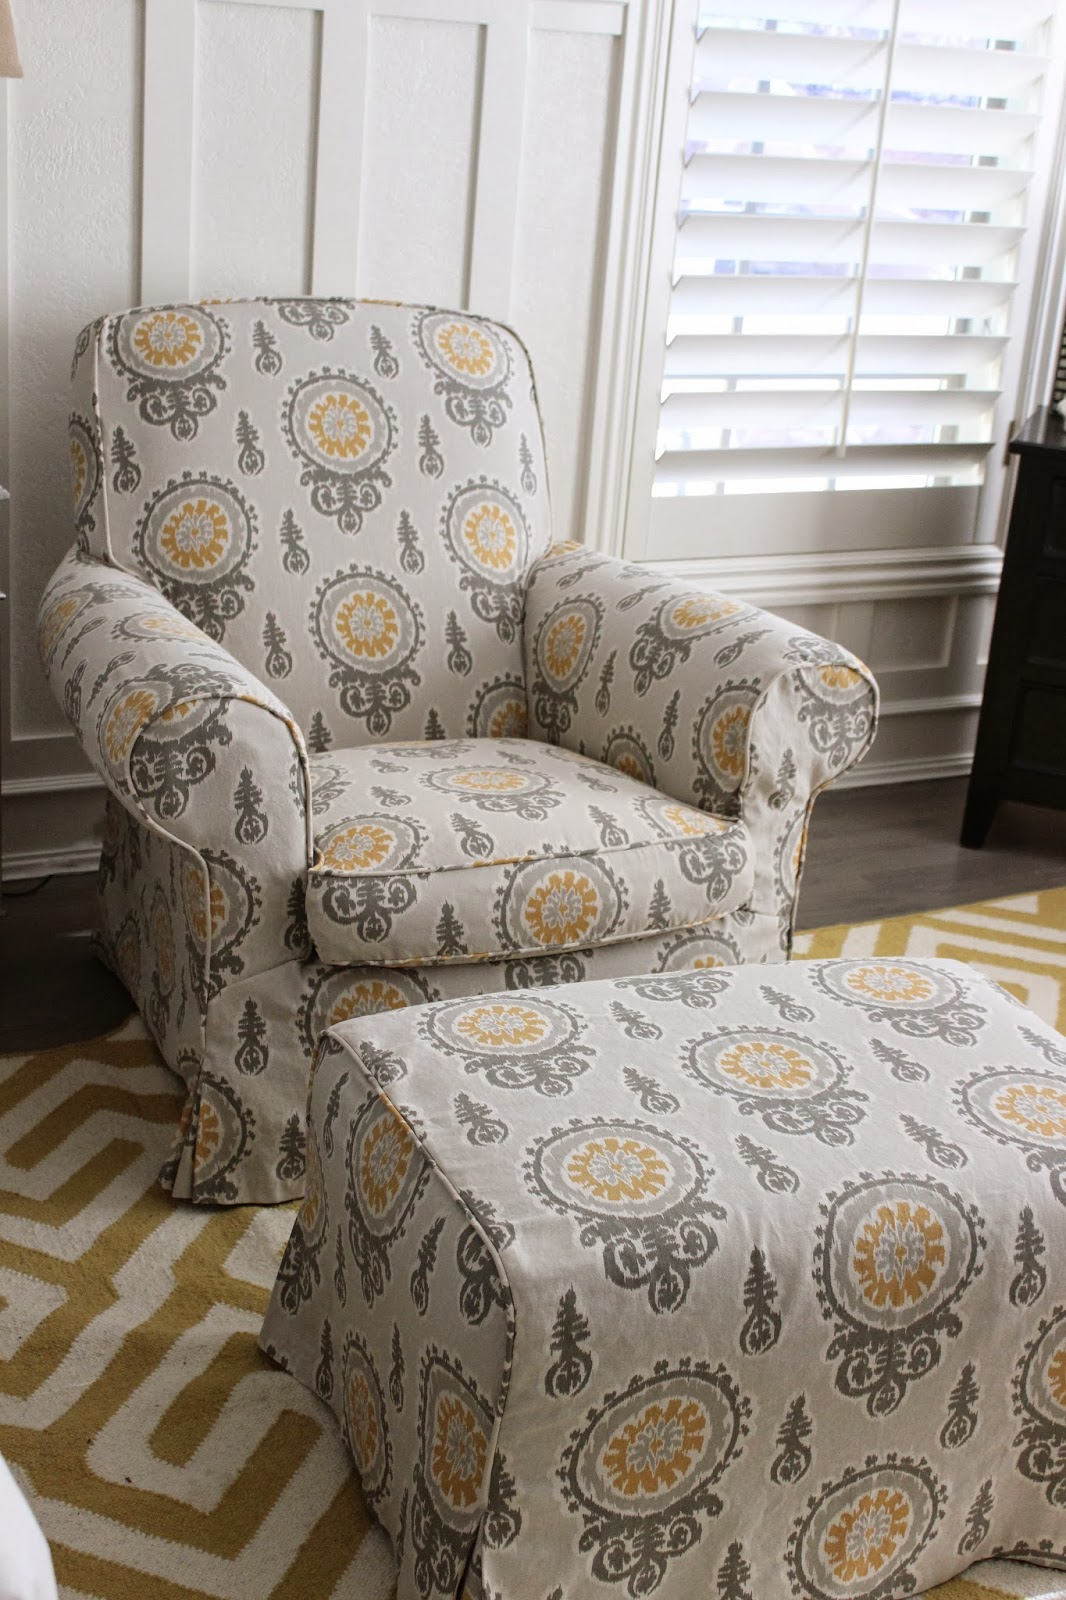 Bedroom Chair With Ottoman Dallas Cowboys Folding Chairs Custom Slipcovers By Shelley Gray Yellow